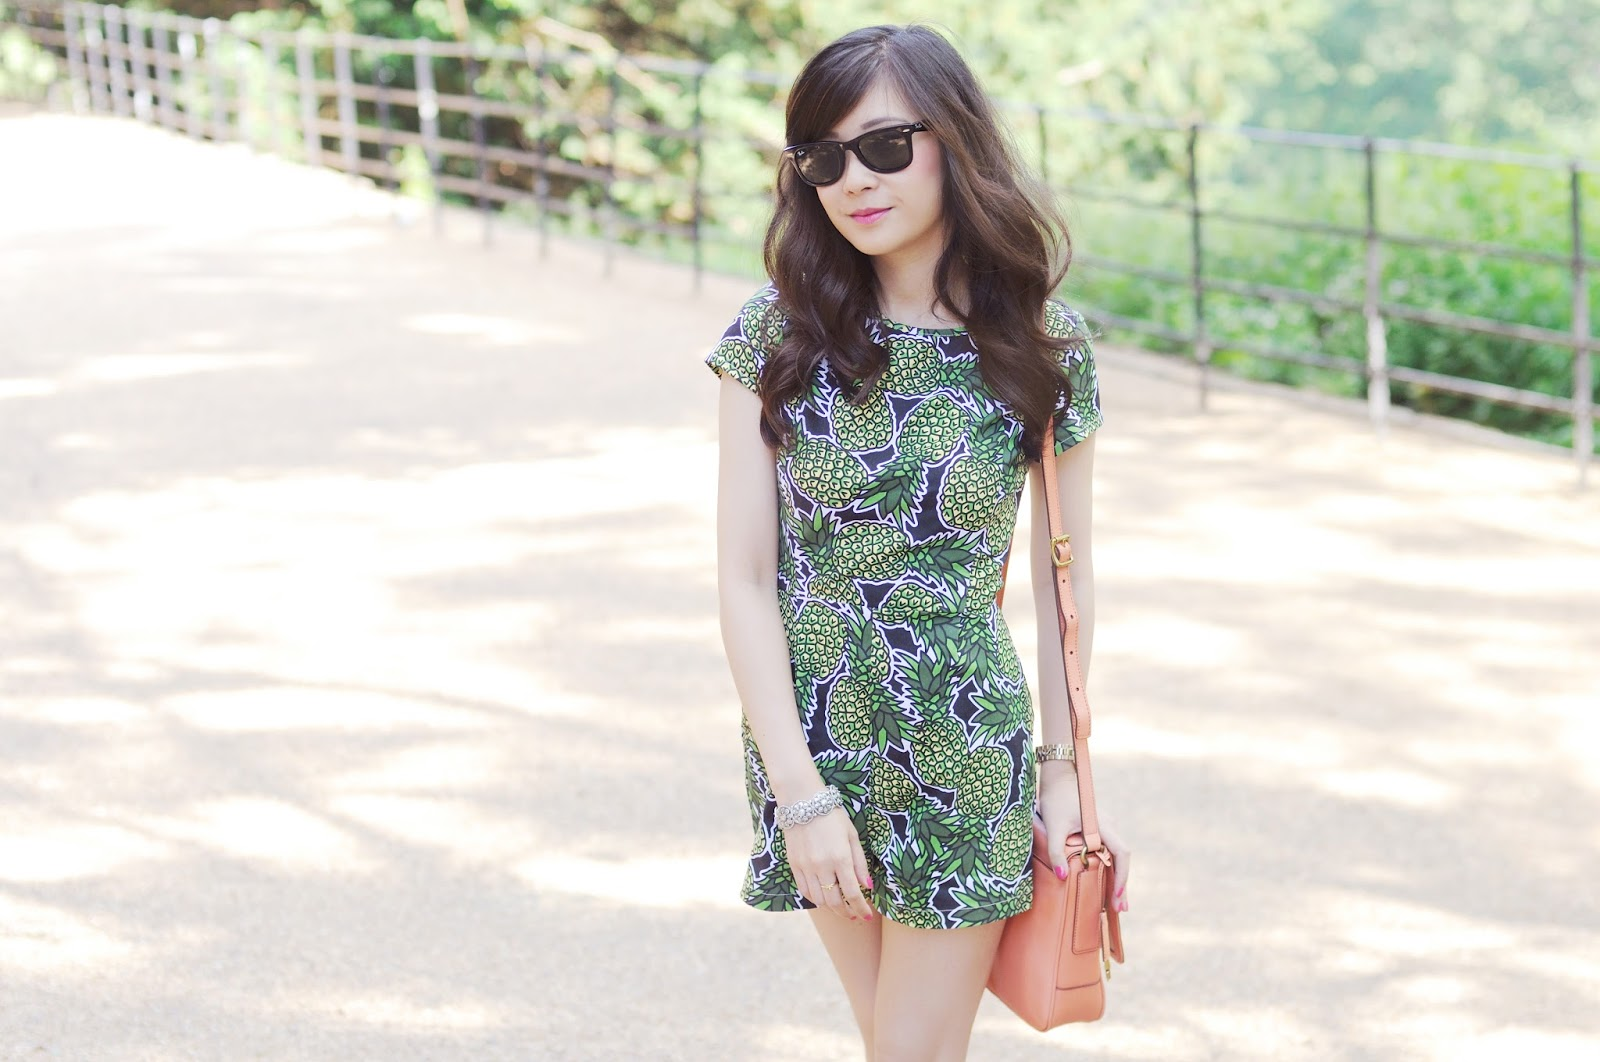 Pineapple print summer trend, pineapple playsuit, uk fashion blog